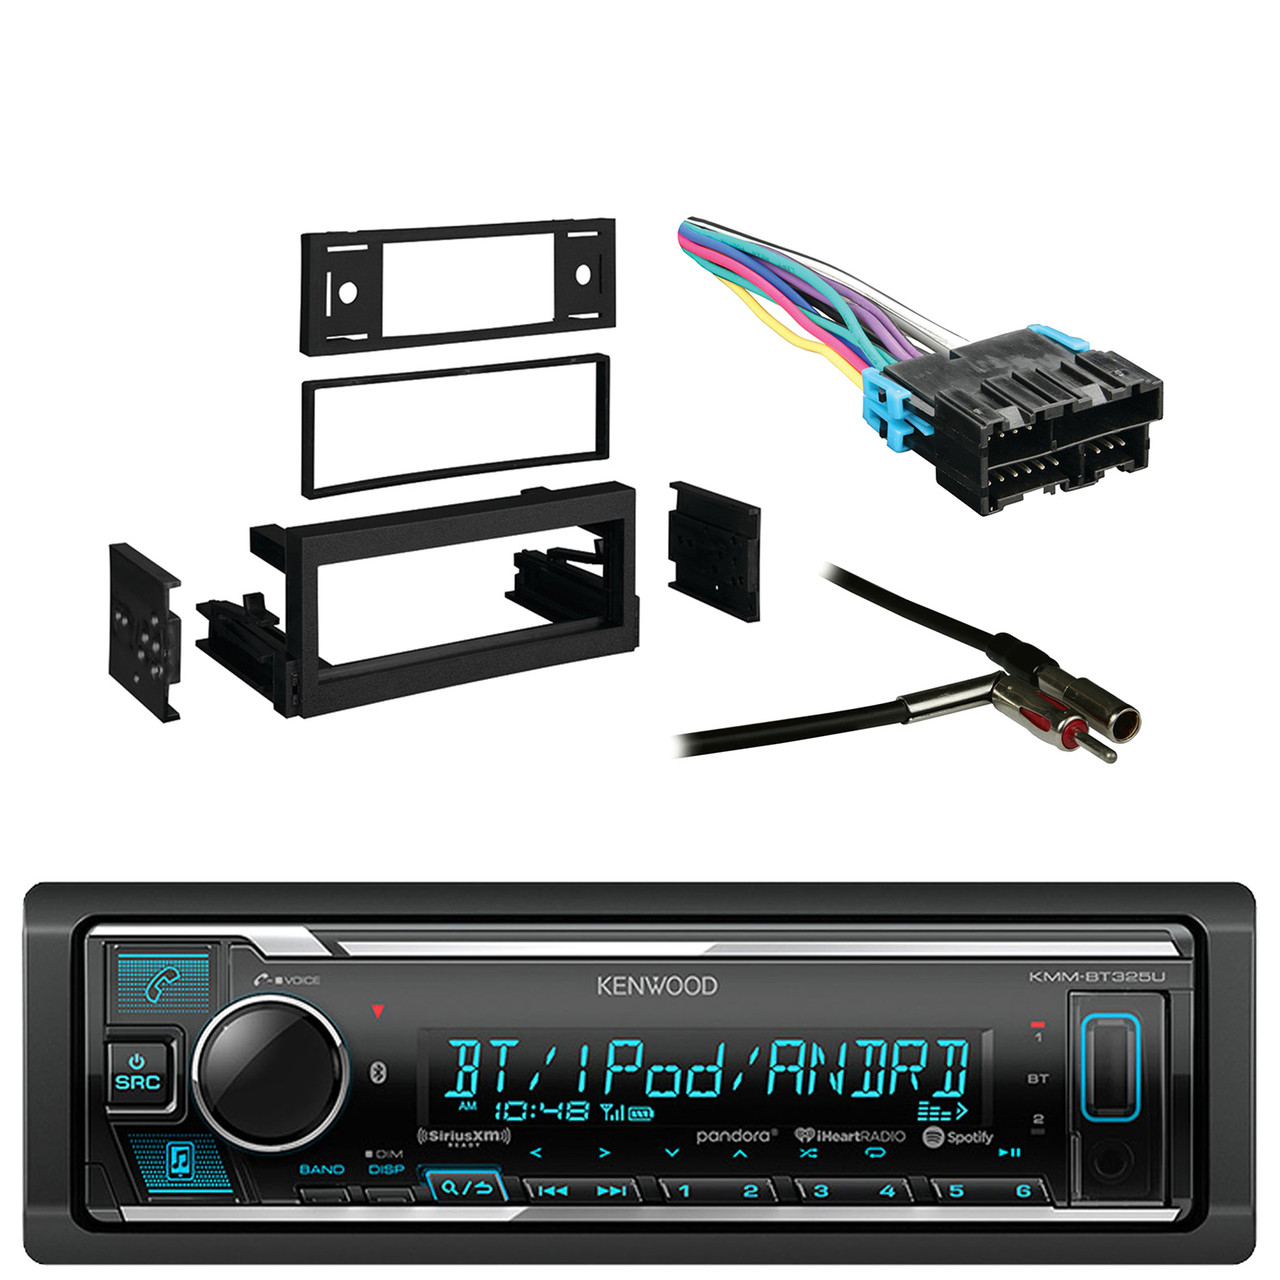 Kenwood Receiver with AM/FM tuner with Bluetooth with Metra Dash Kit on